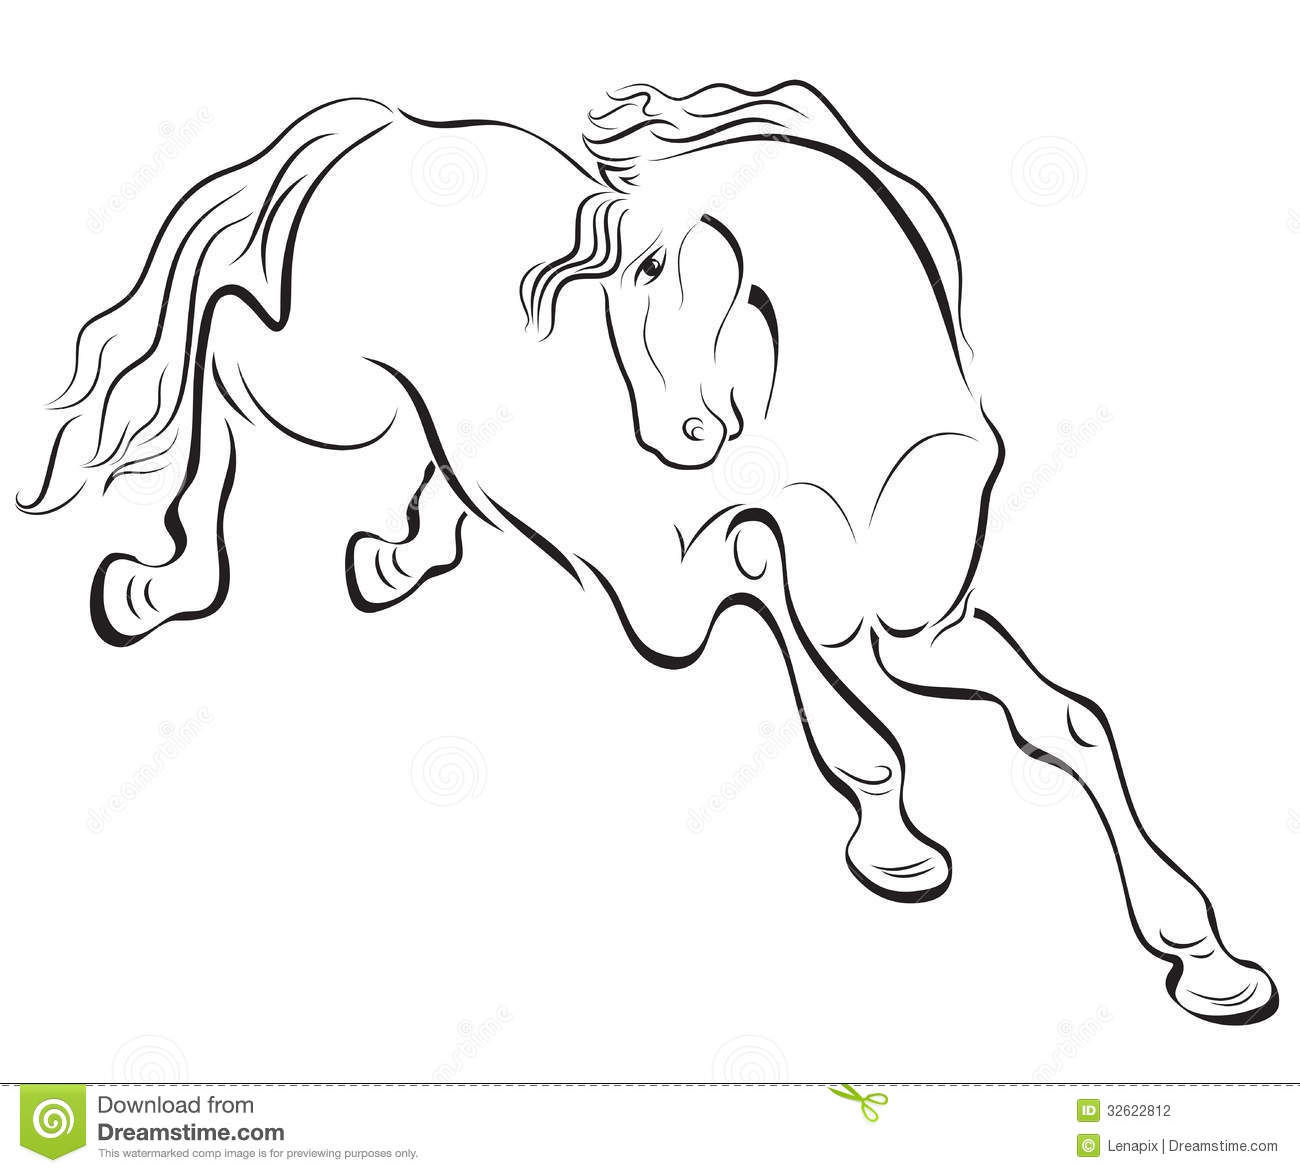 Outline Horse Drawing Stock Vector Image Of Mammal Horse